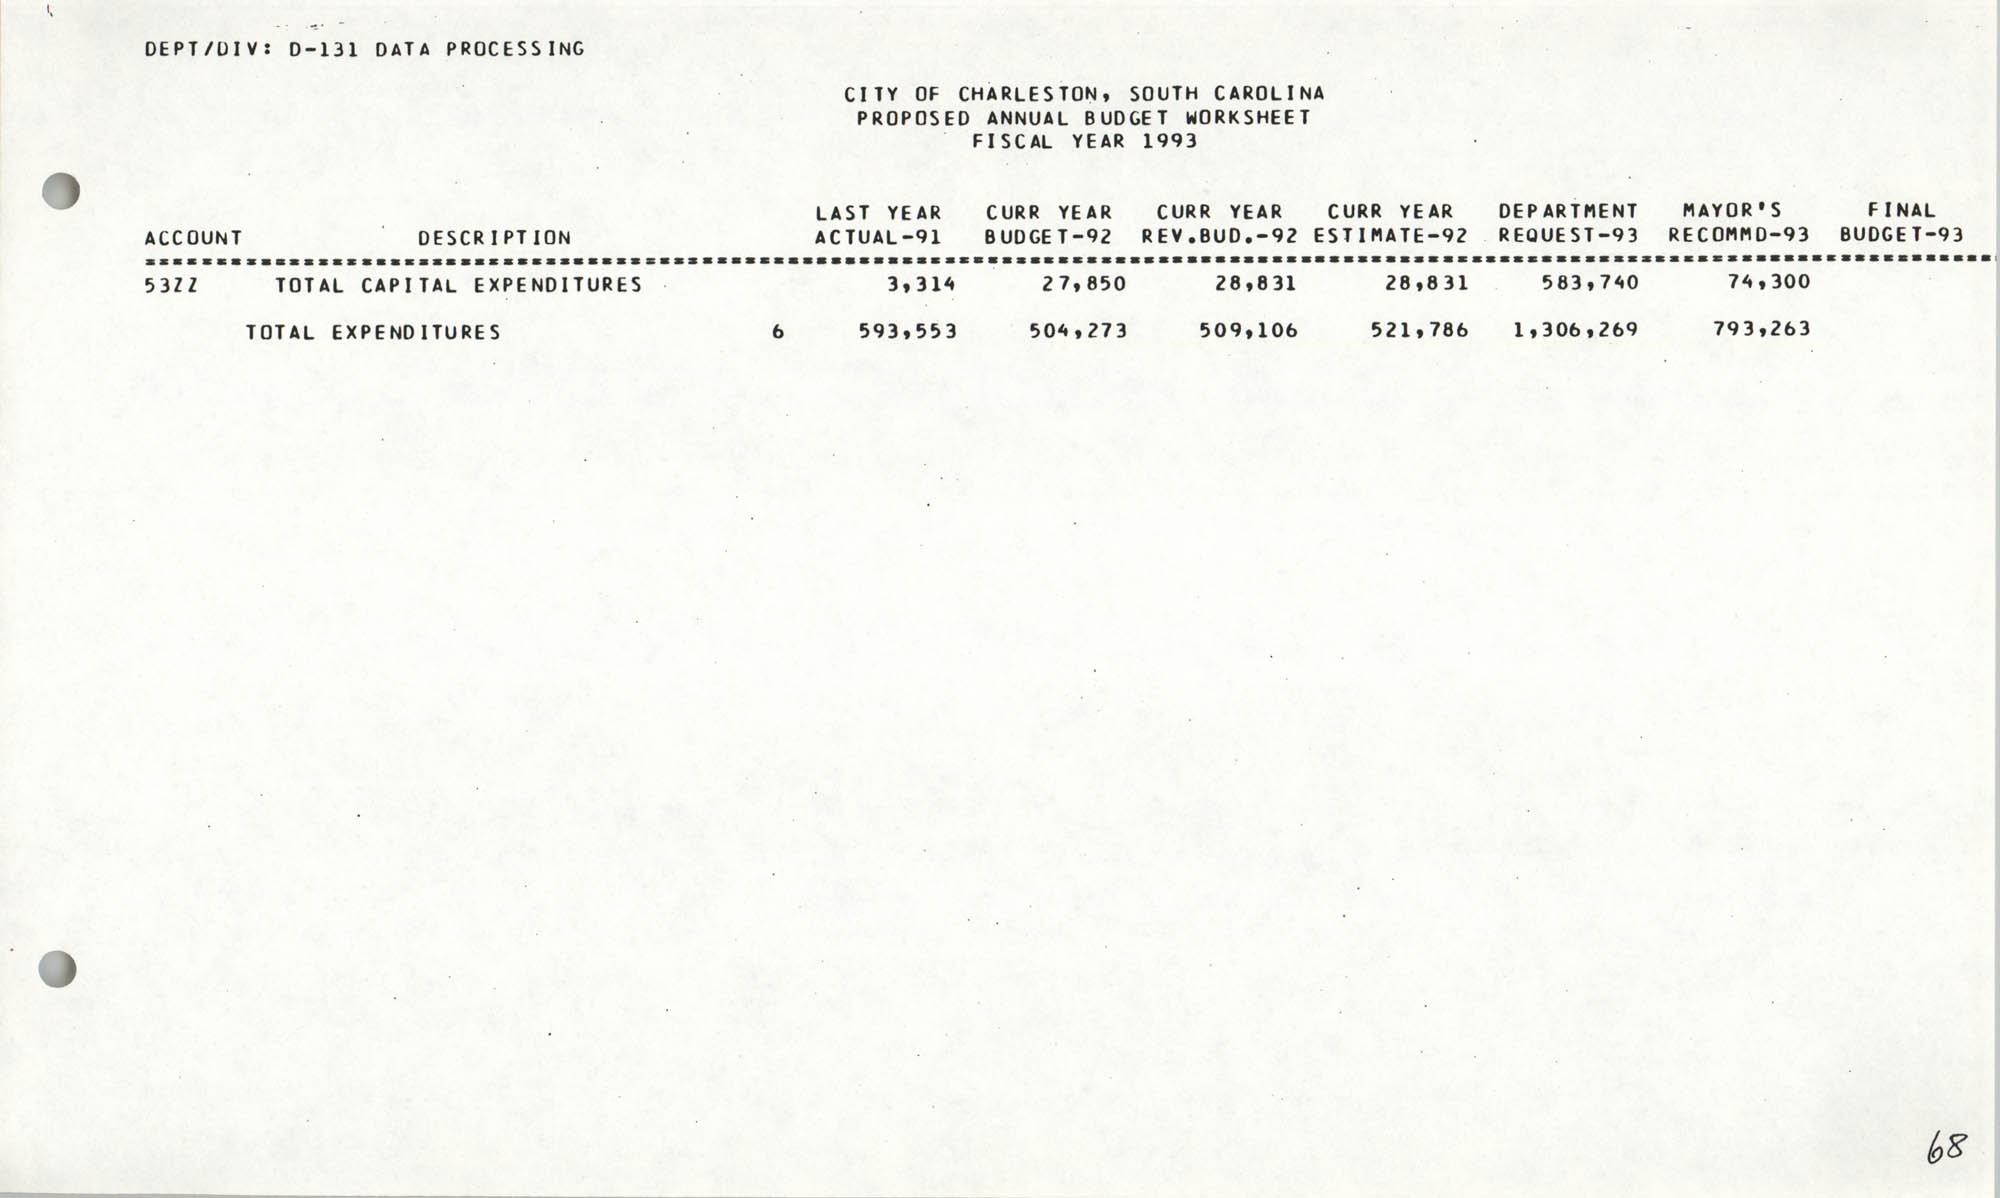 The City Council of Charleston, South Carolina, 1993 Budget, Page 68